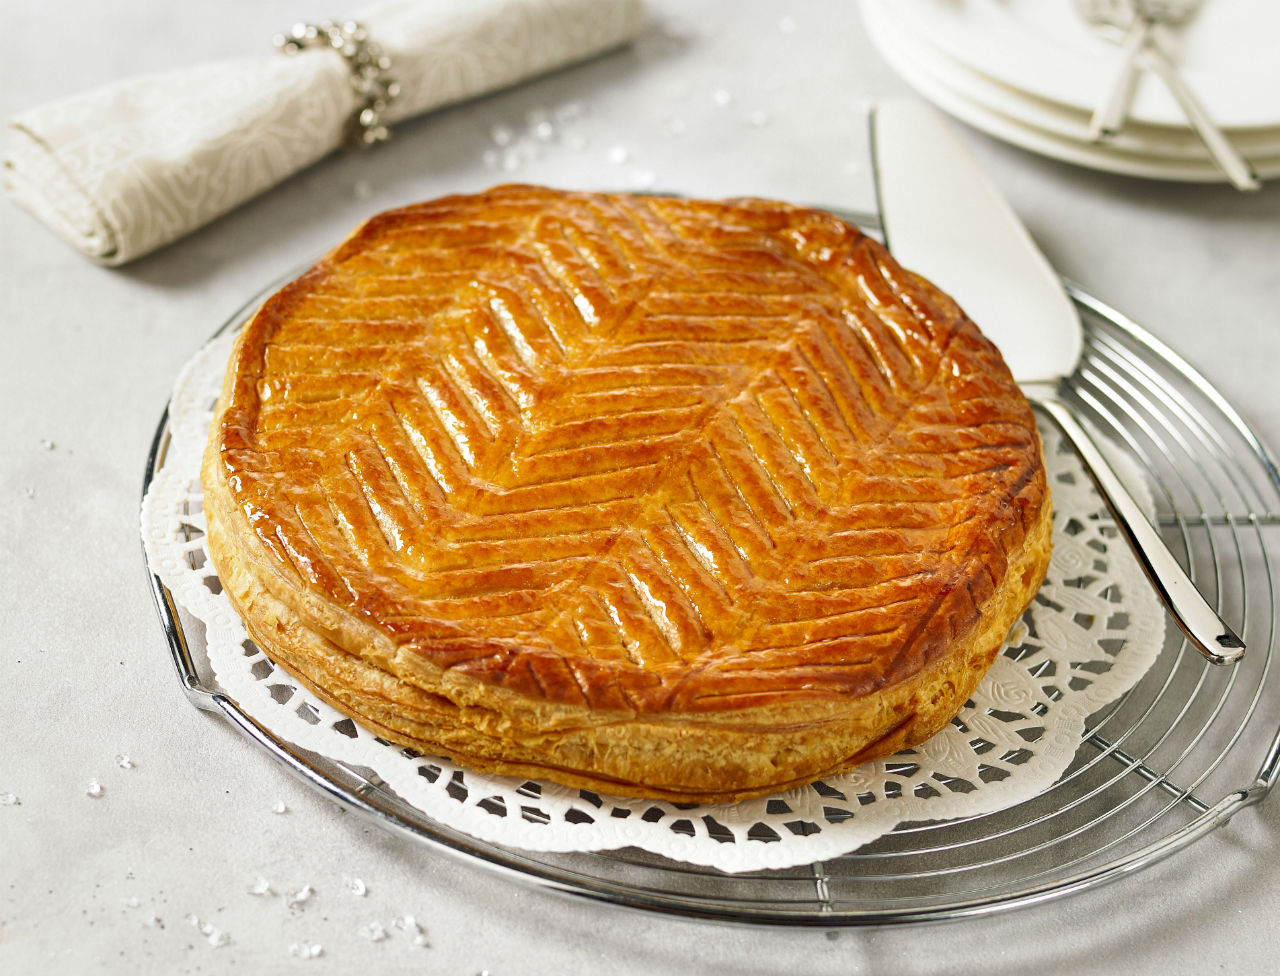 Galette des rois à la pistache